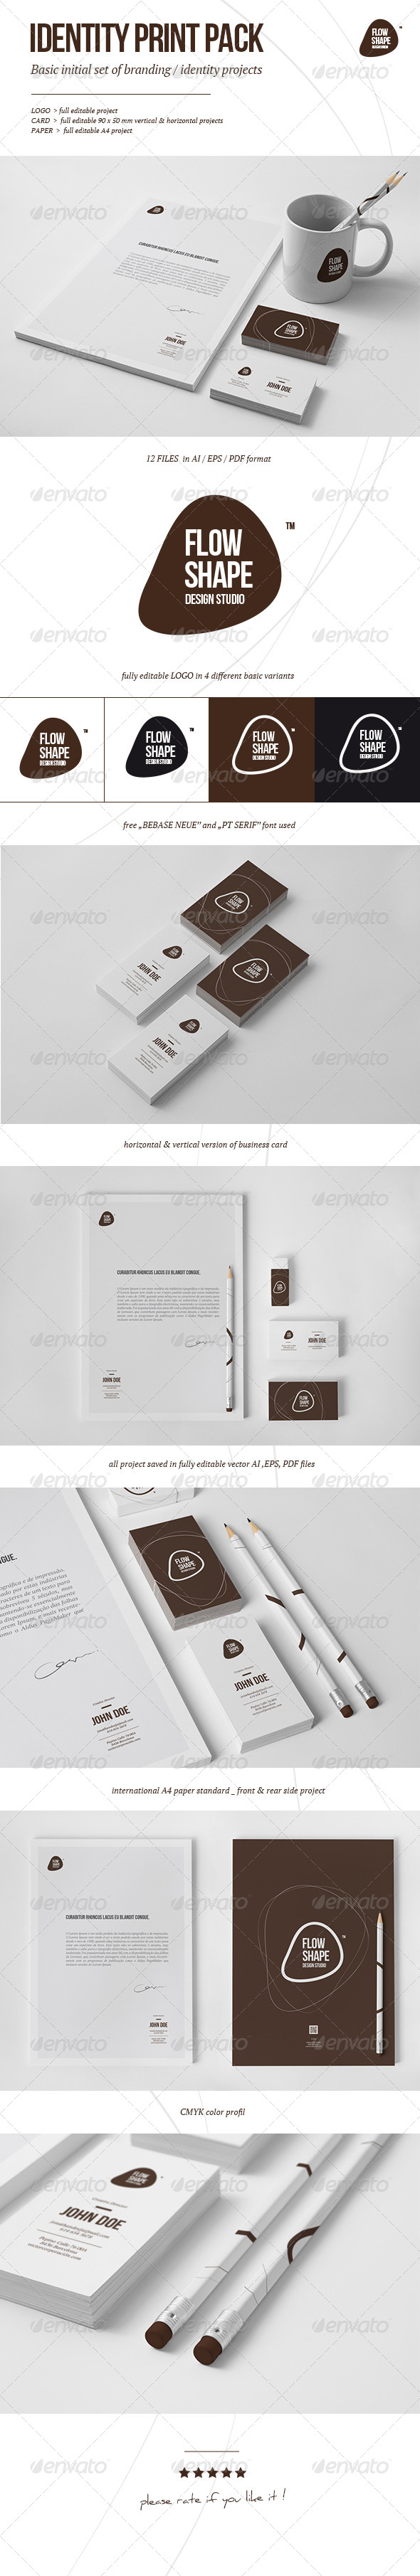 Flow Shape Branding Print Pack - Stationery Print Templates